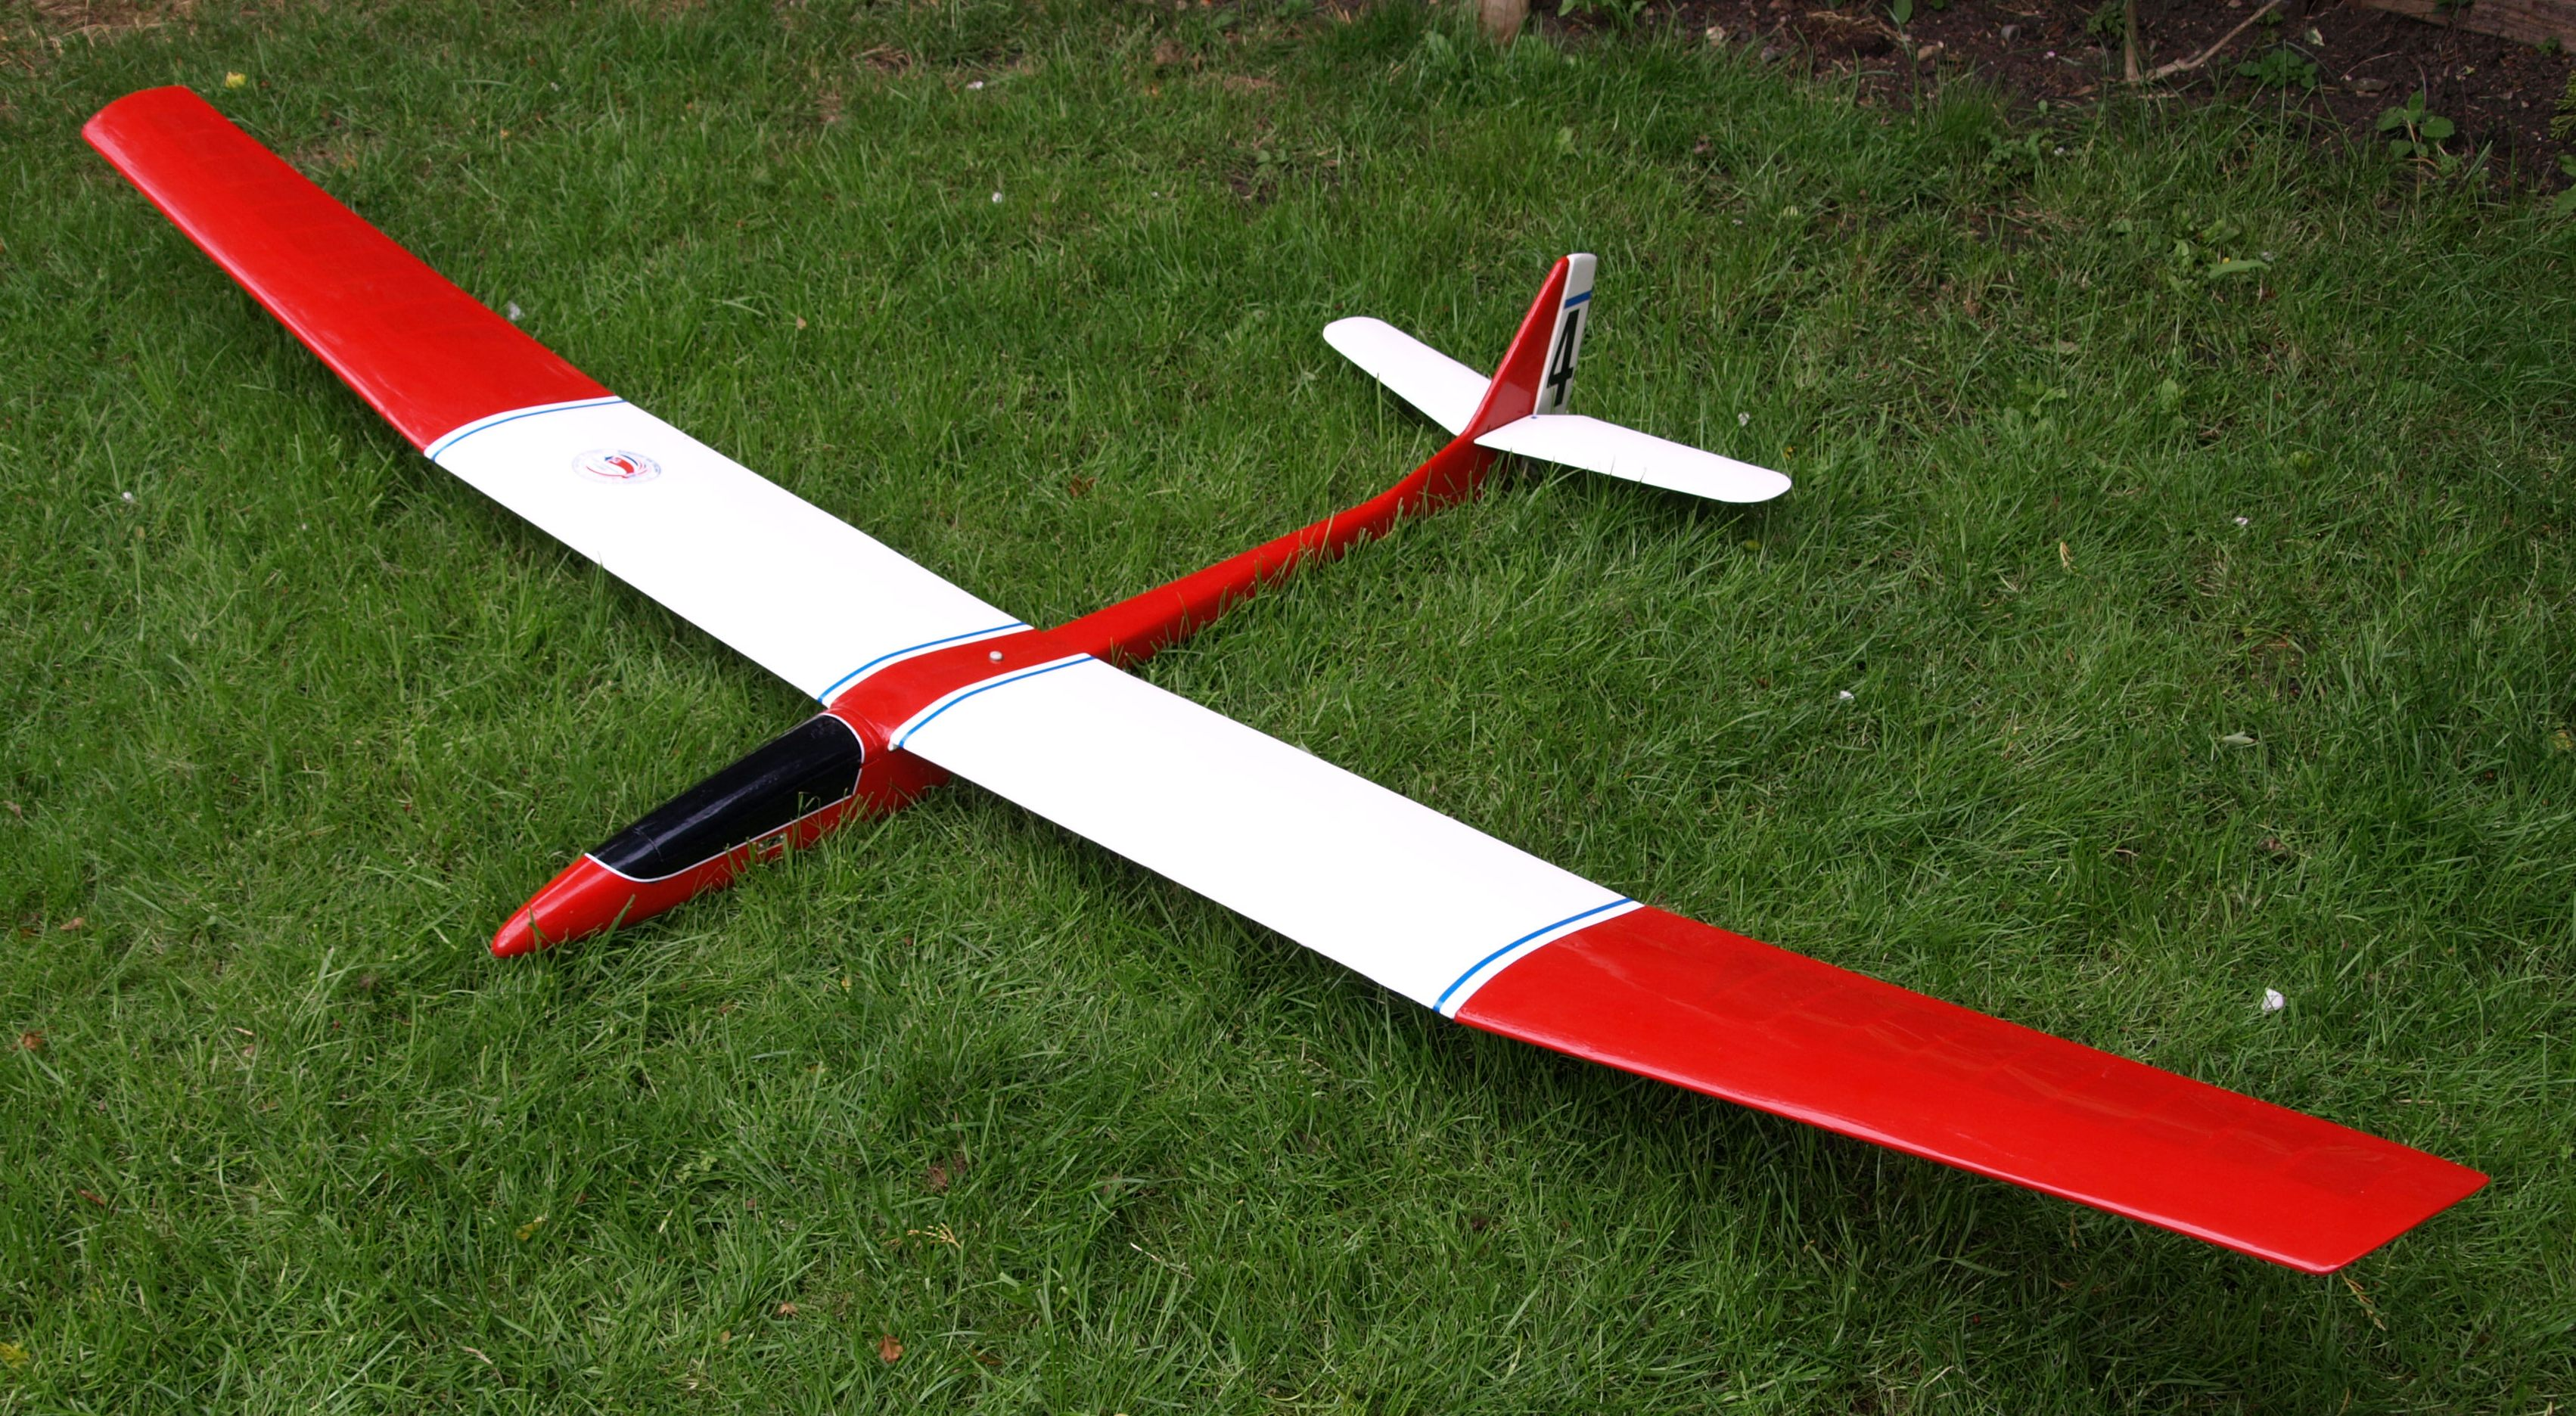 Radio Controlled And Gliding Over >> Radio Controlled Glider Wikipedia